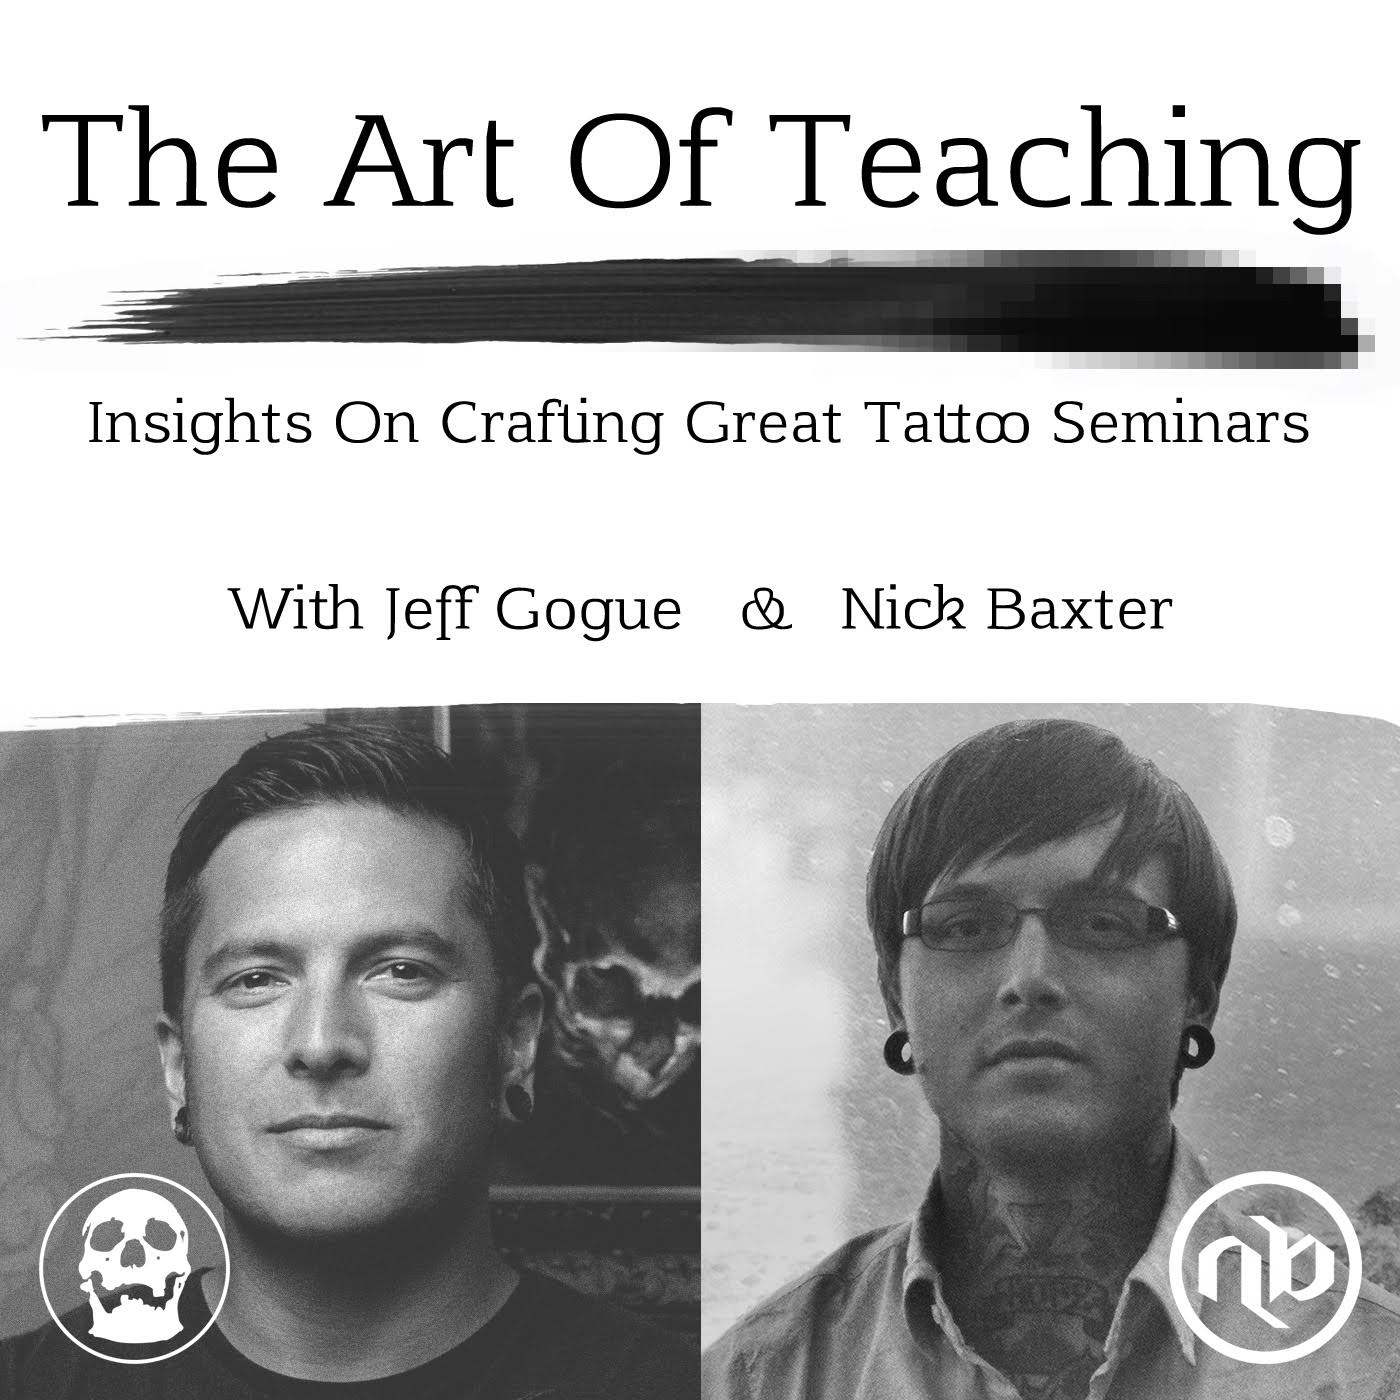 Art of Teaching with Nick Baxter and Jeff Gogue